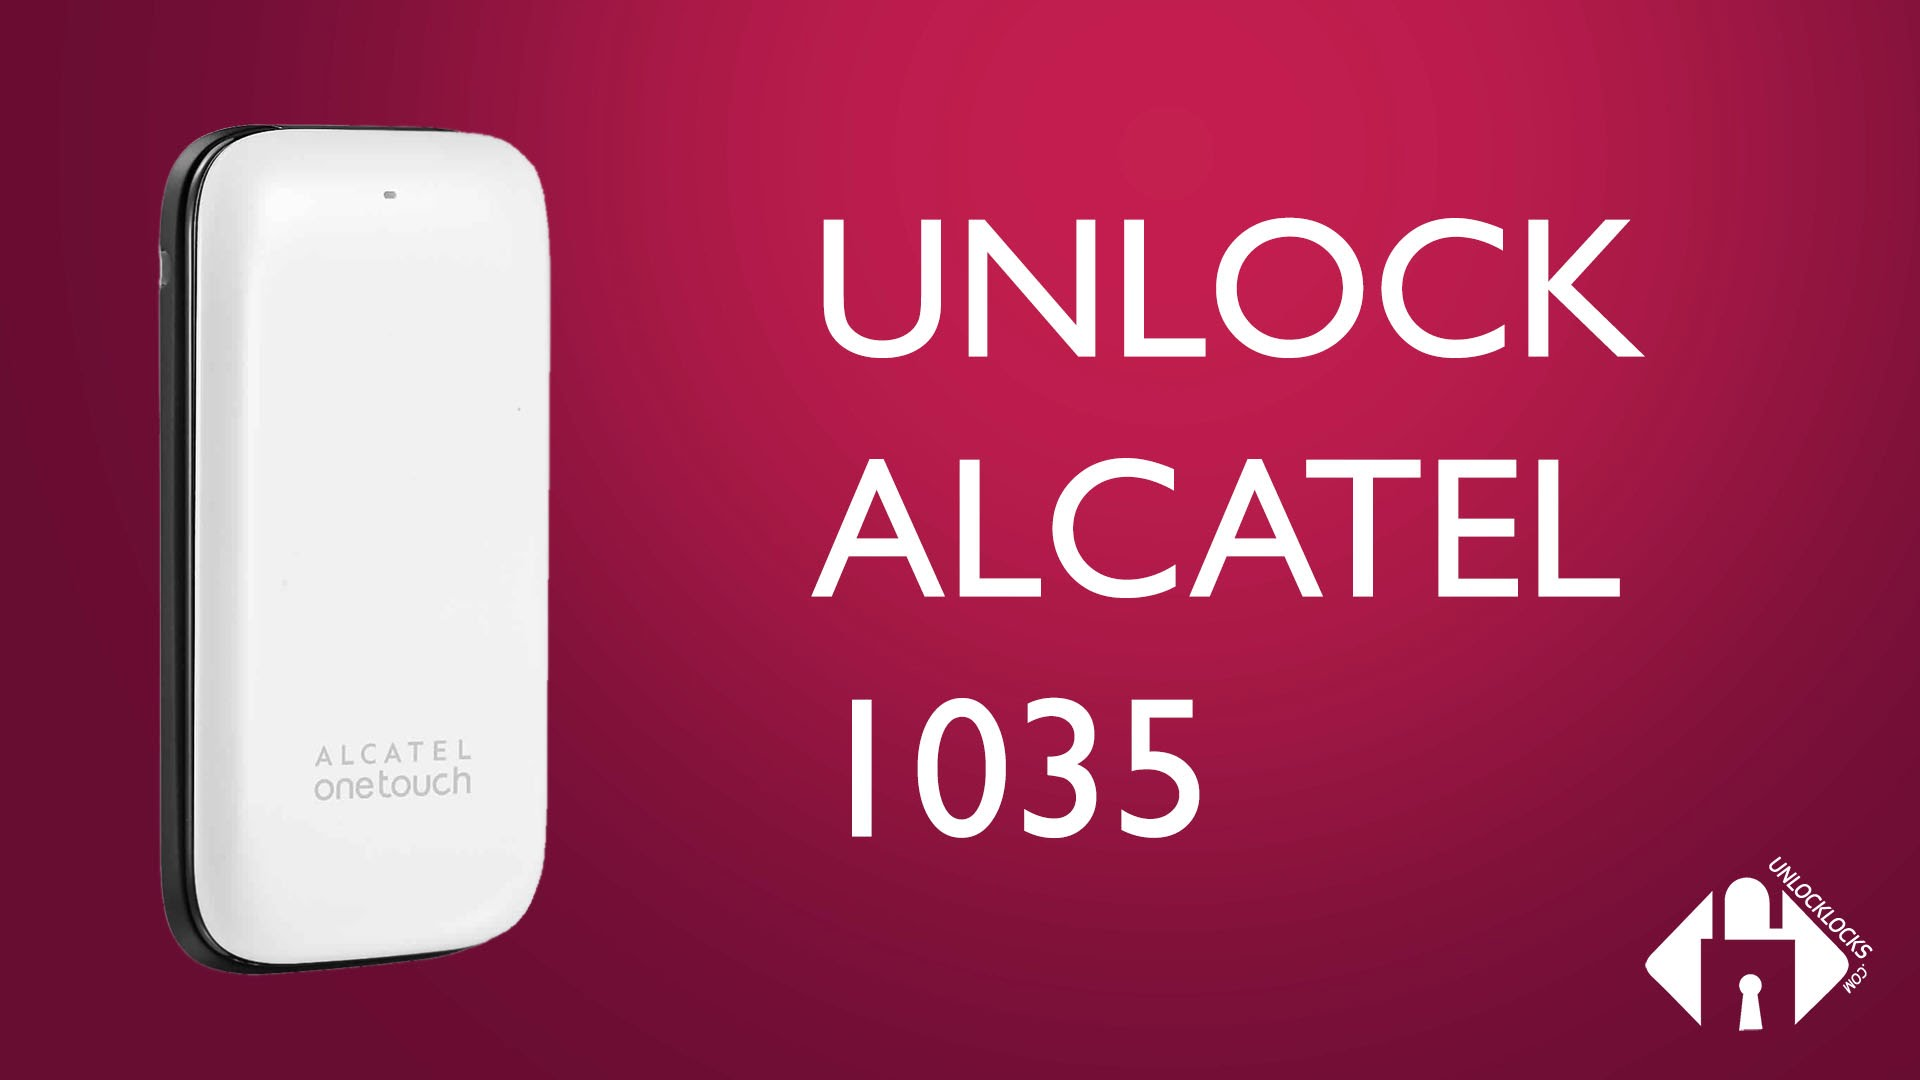 How To Unlock Alcatel ONETOUCH 1035 (OT-1035X, OT-1035A and